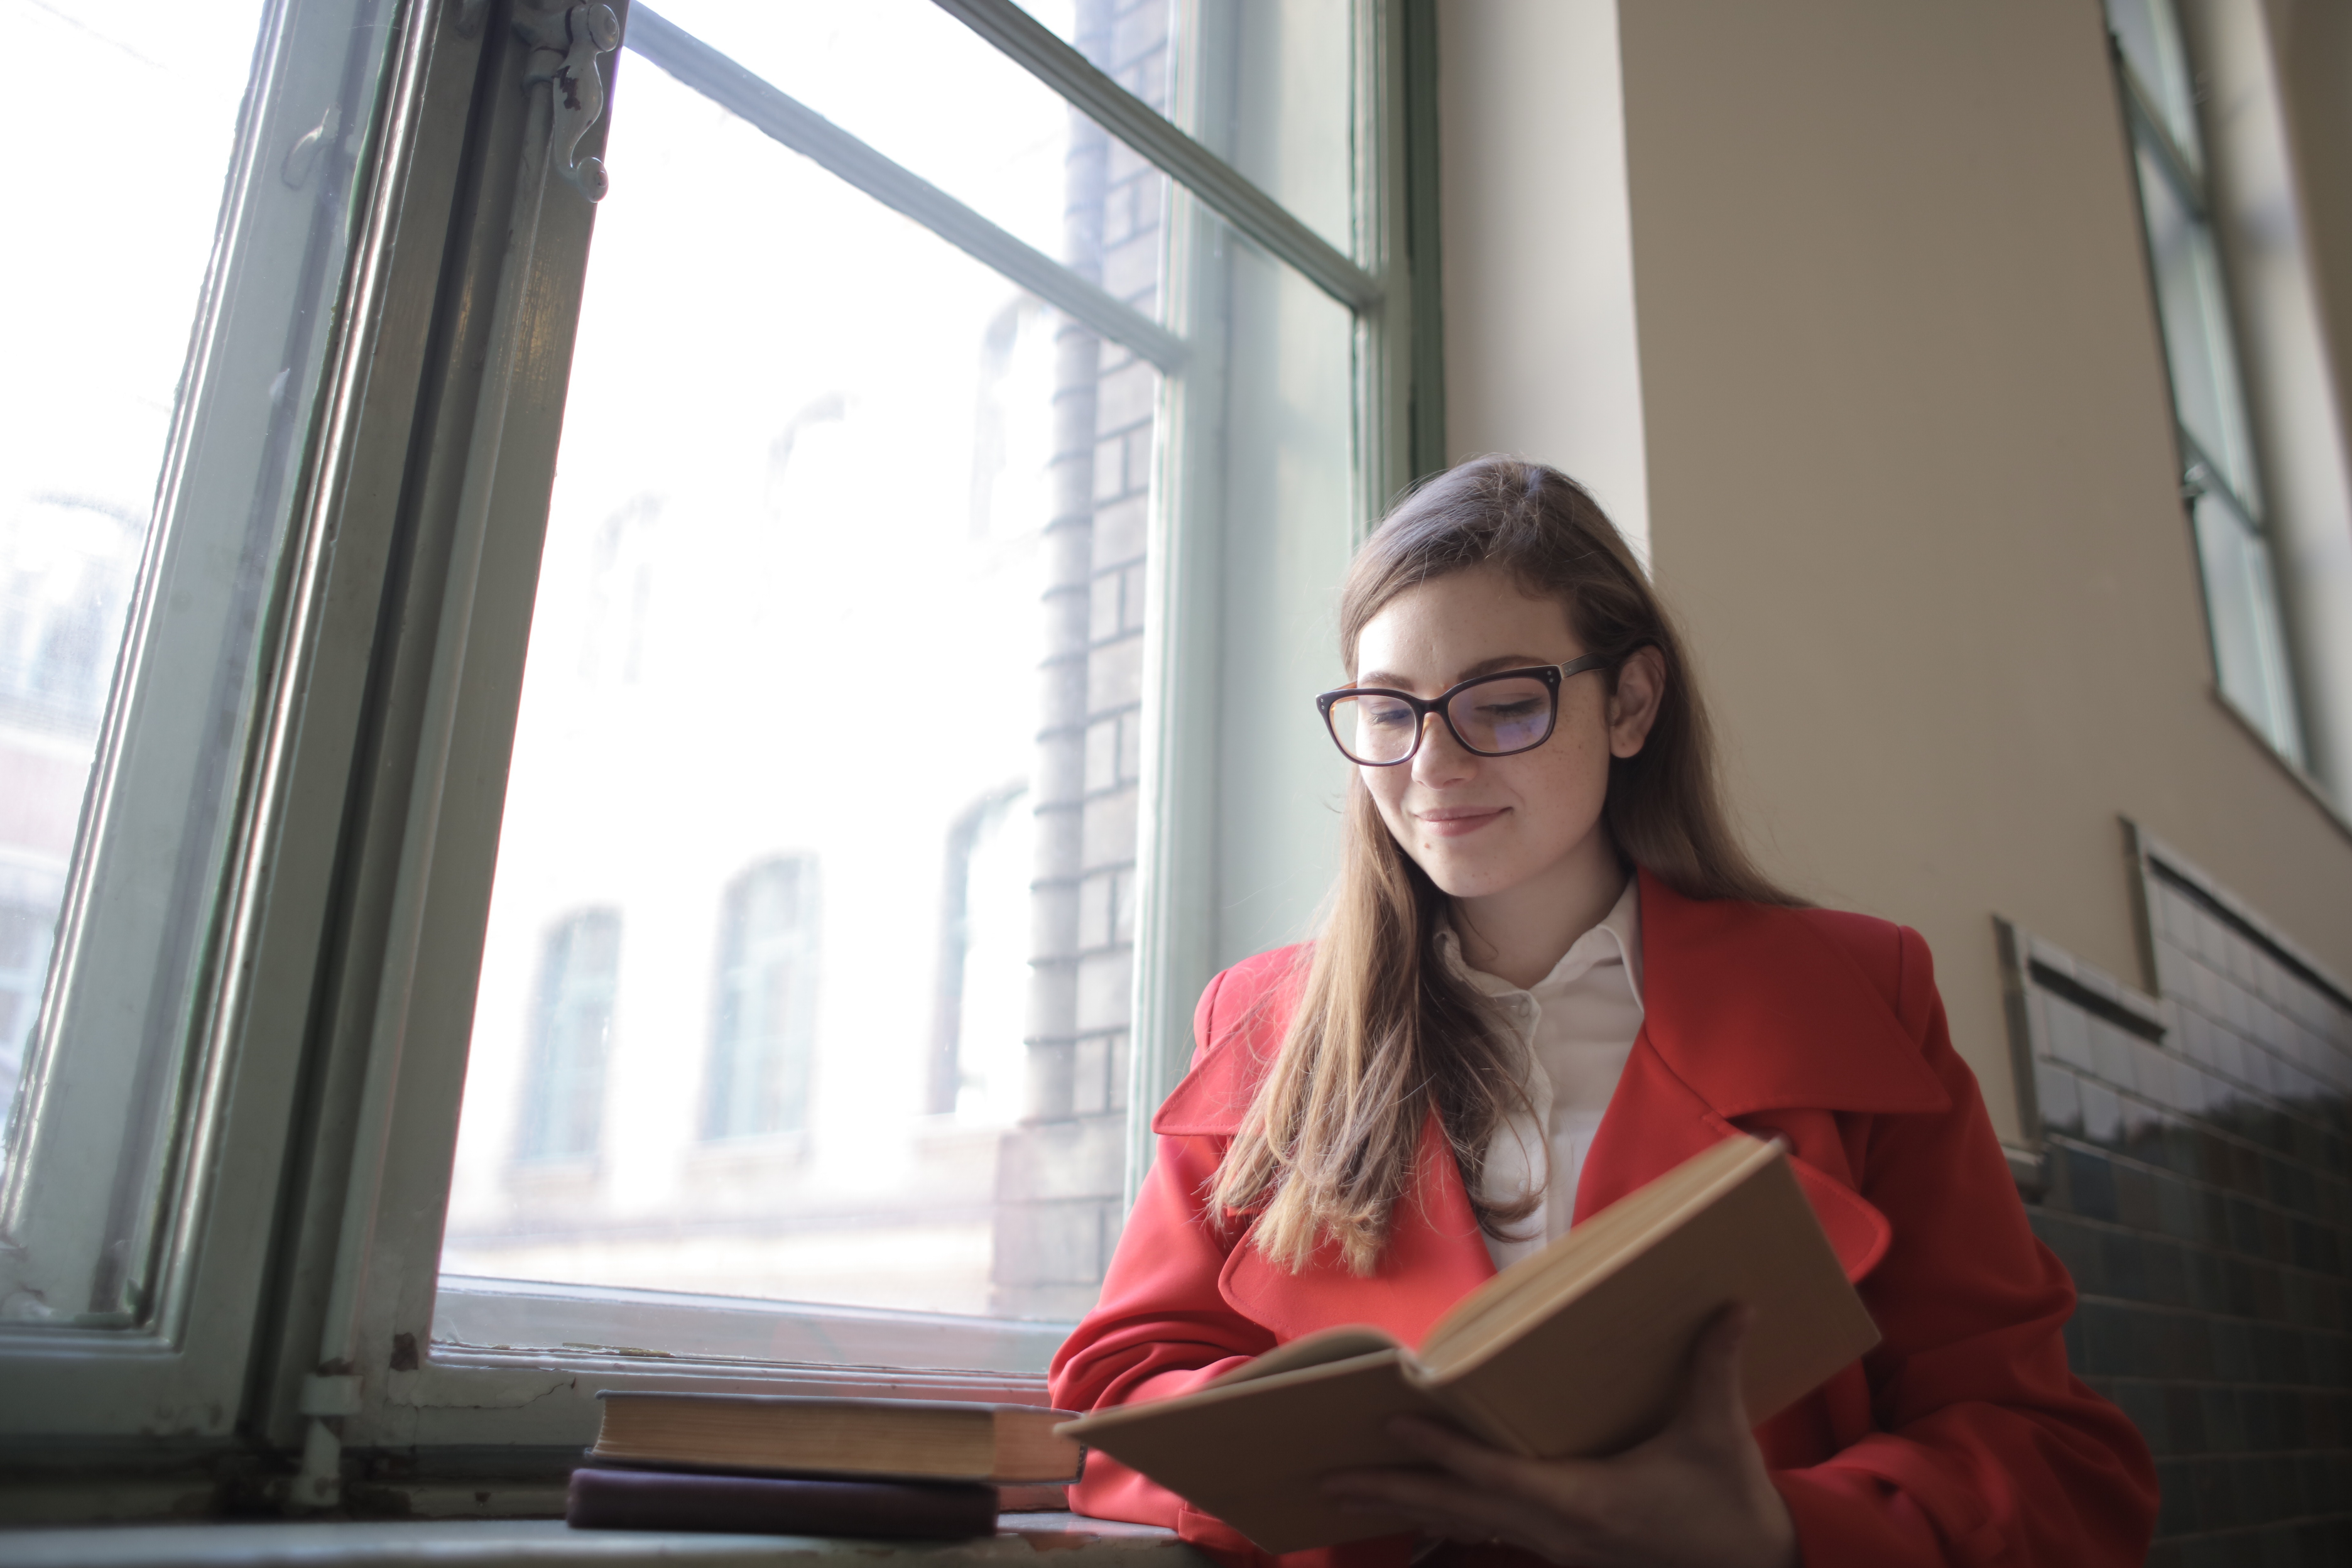 woman-in-red-blazer-reading-book-3791687.jpg